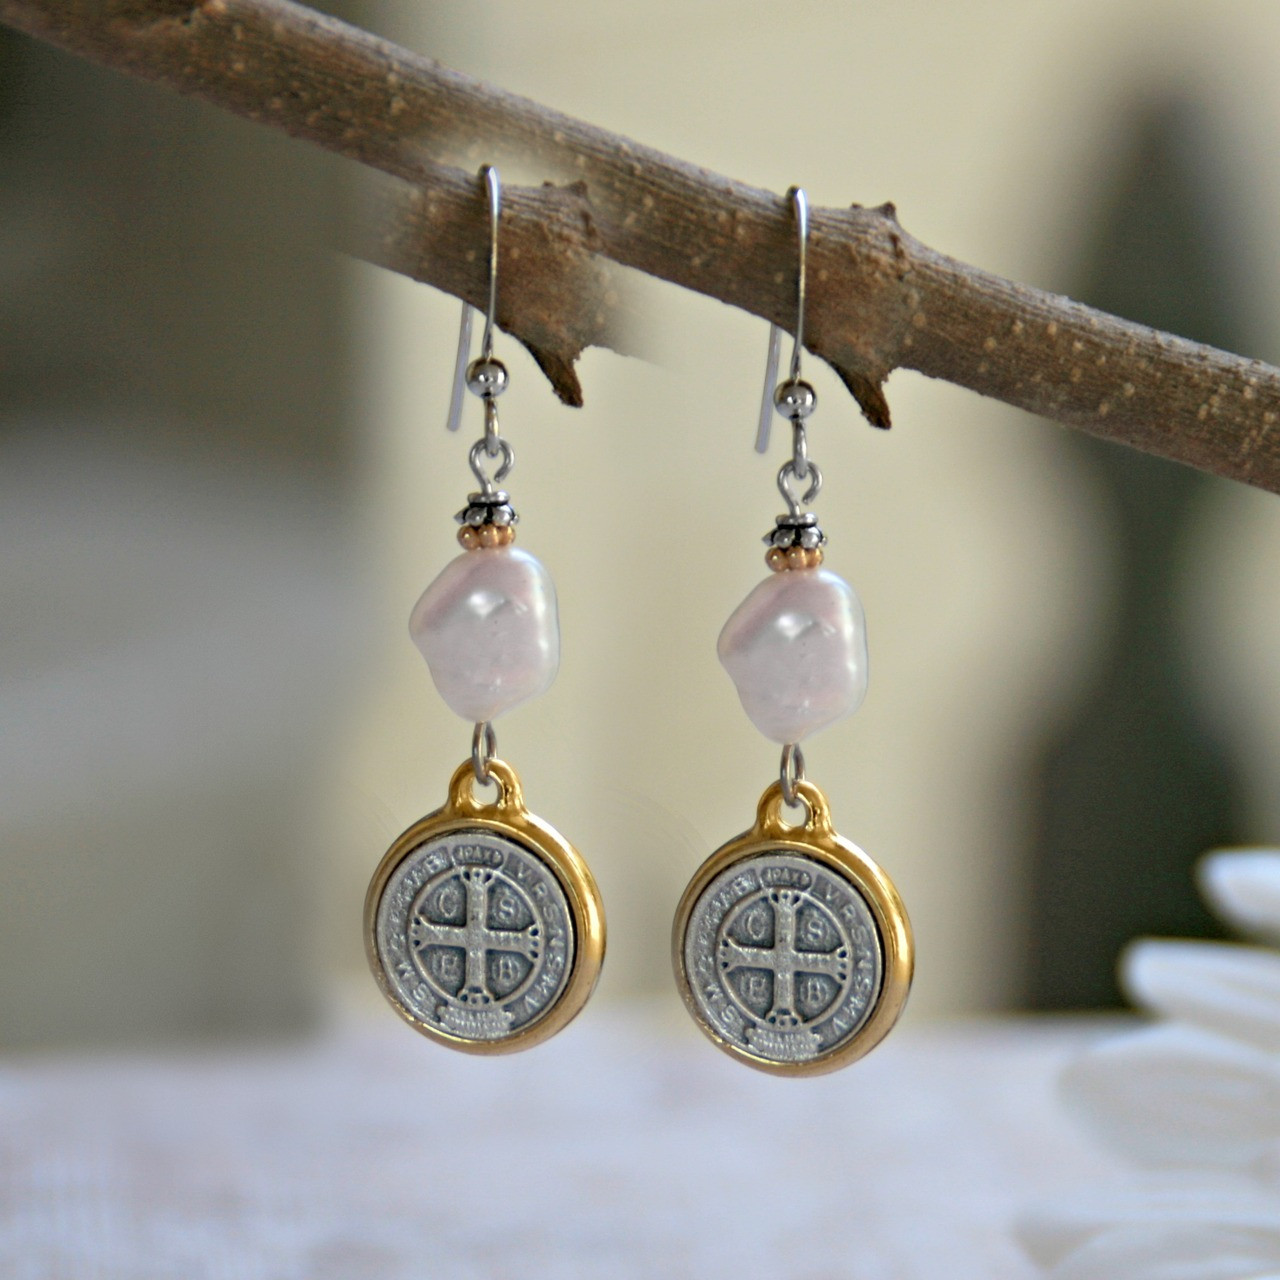 IN-36  St. Benedict Freshwater Pearl Earrings